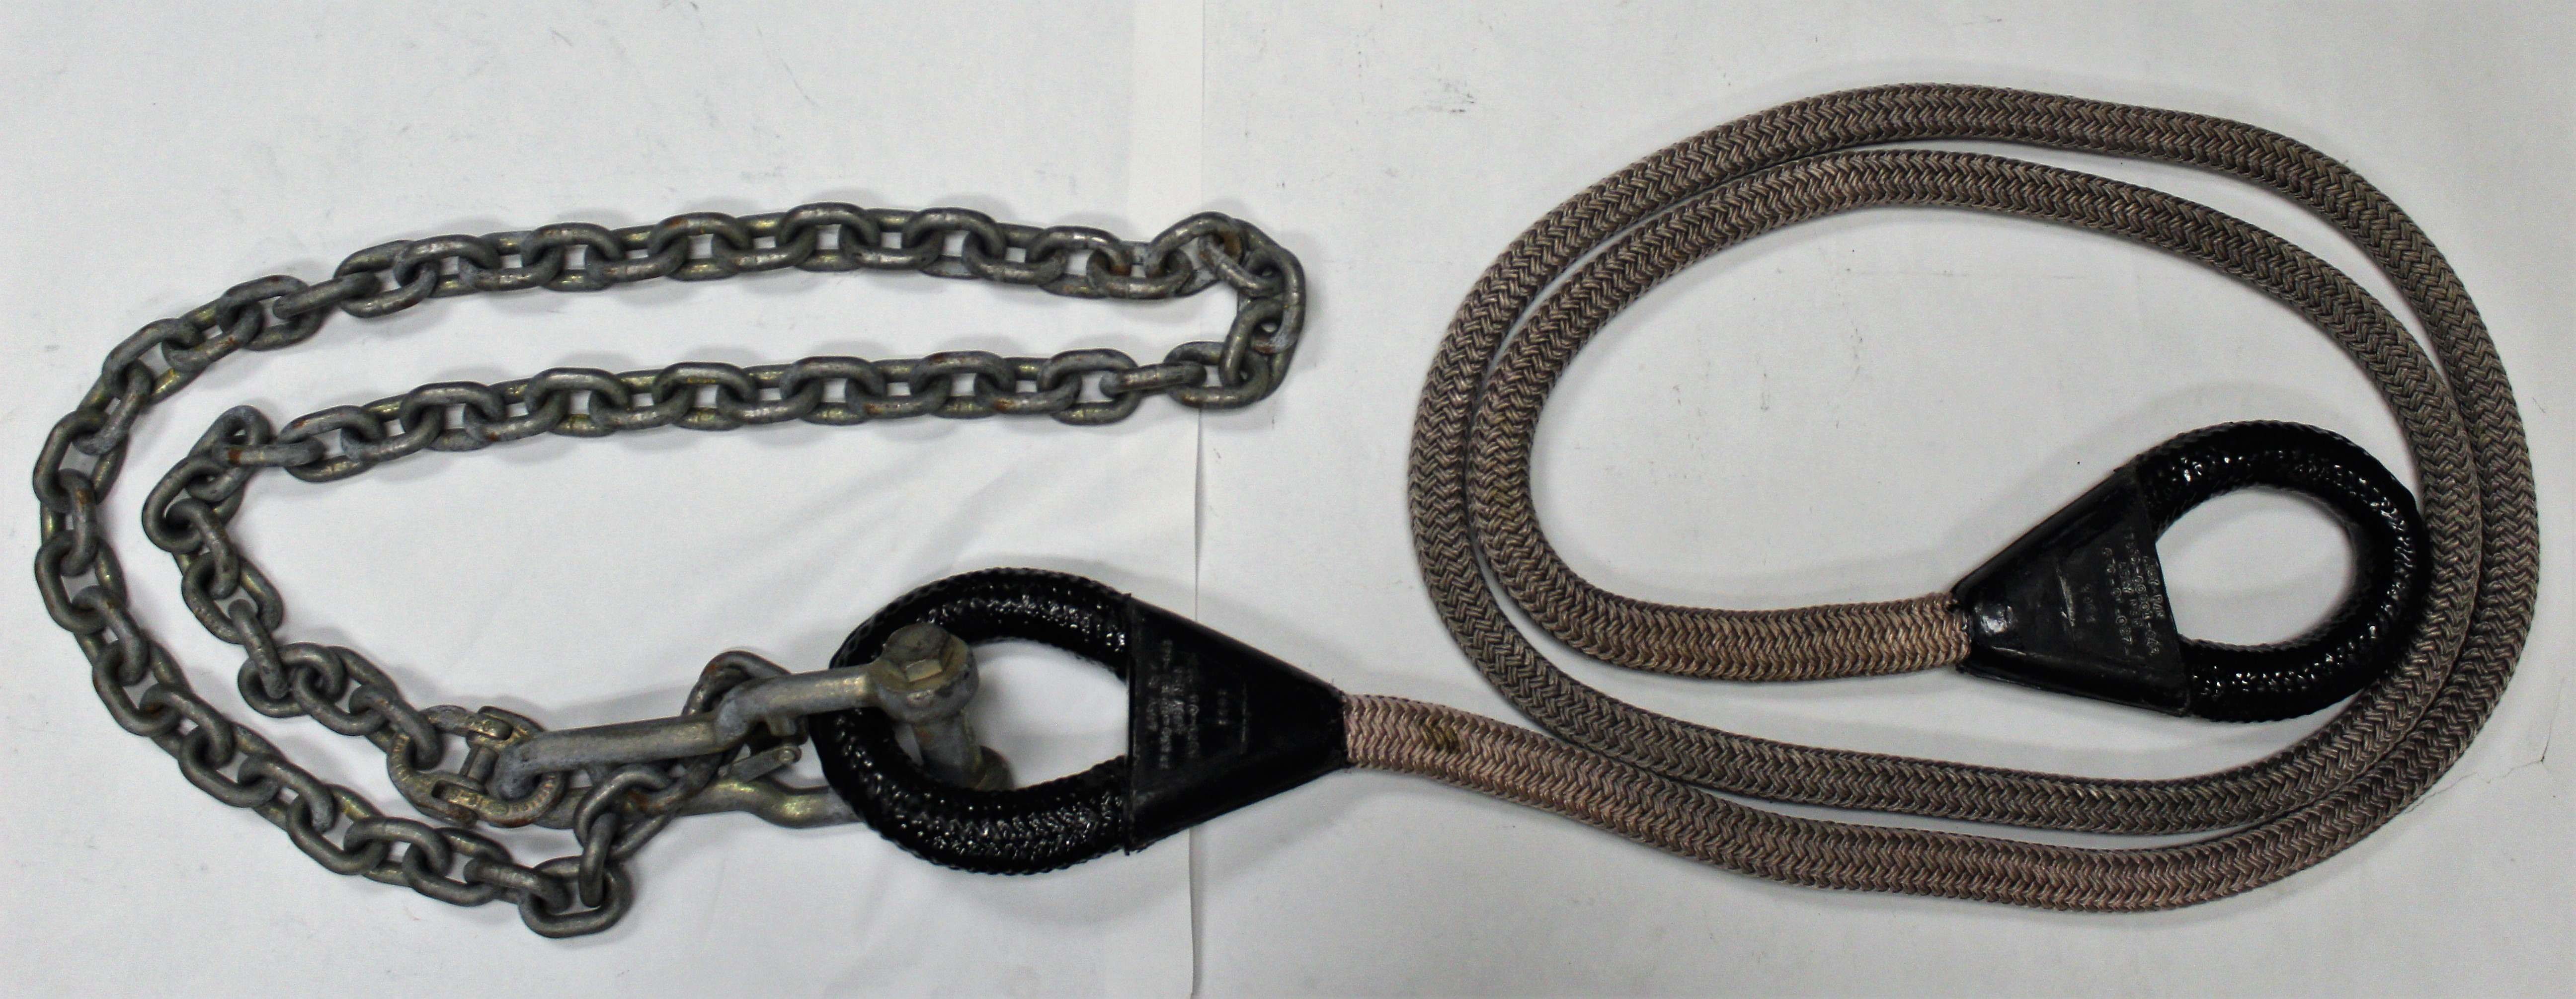 1 Quot X 11 Tow Rope Double Braid Nylon Nsn 4020 01 047 6814